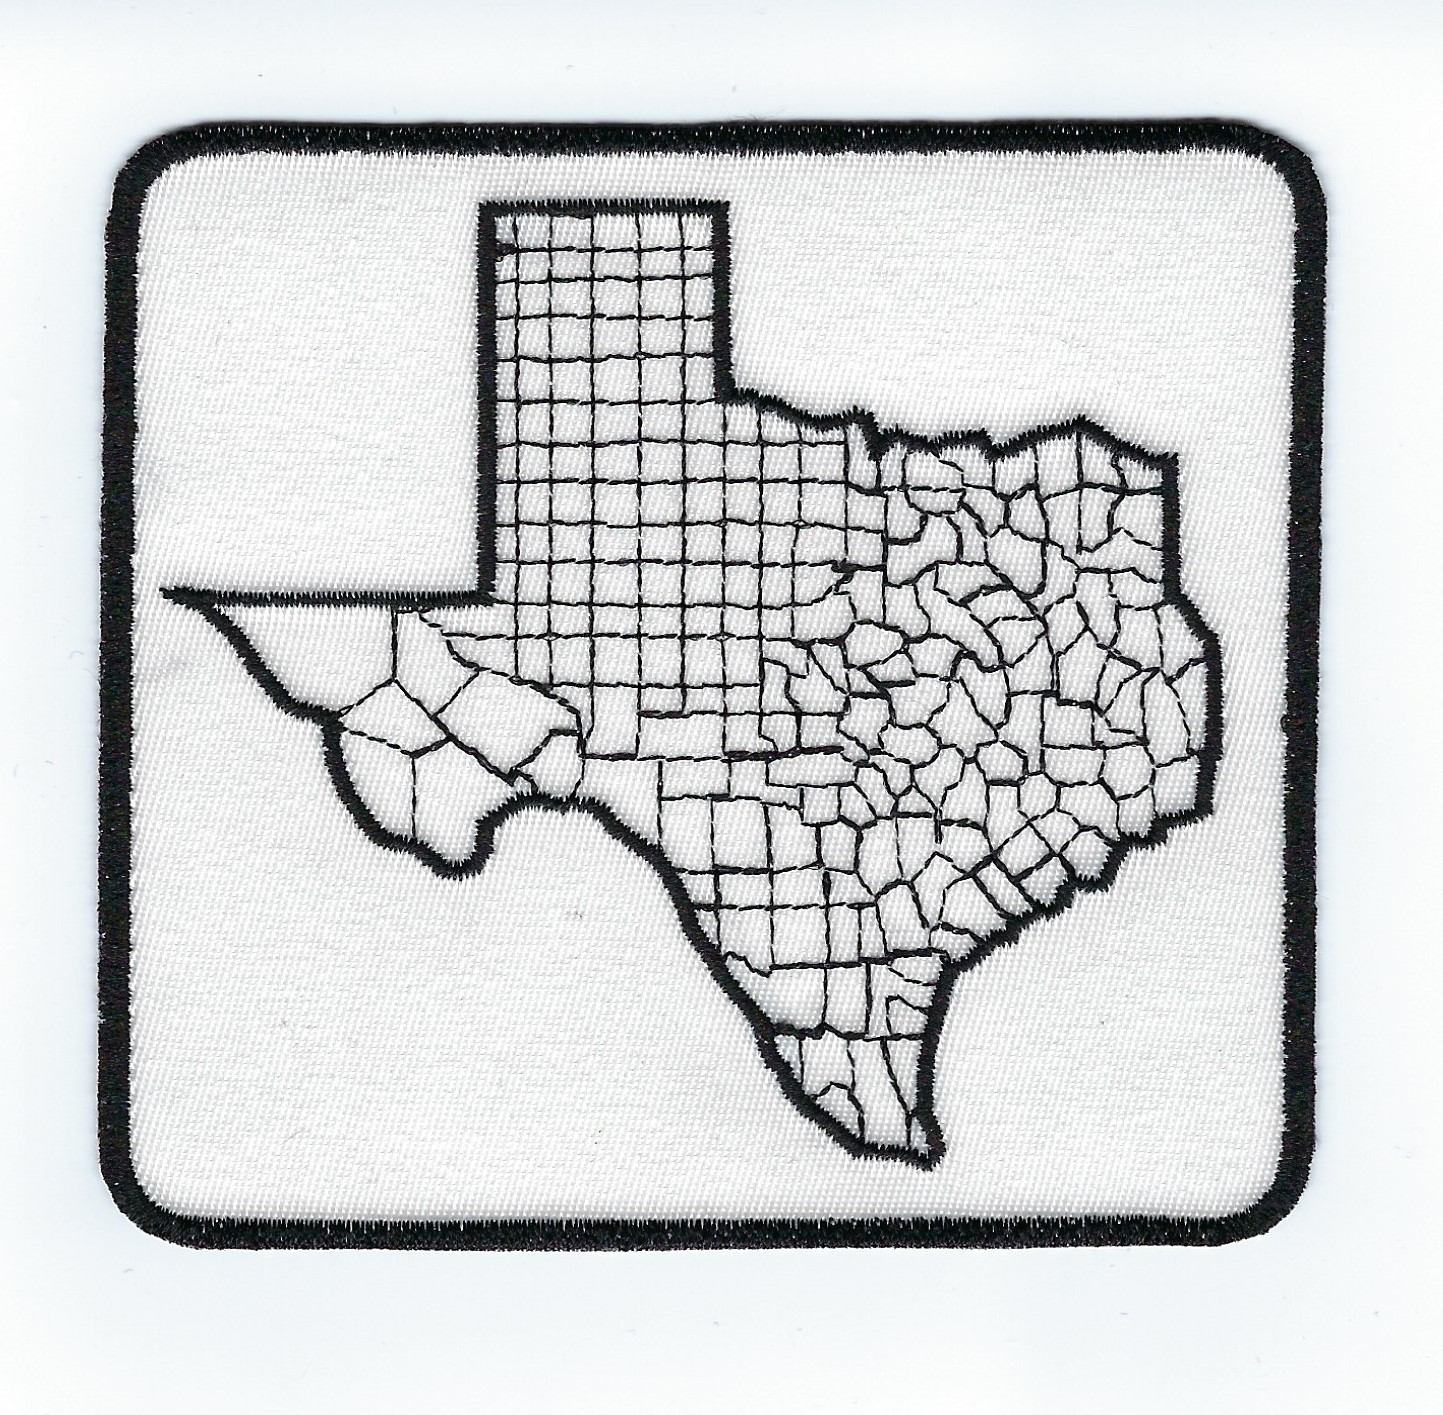 Texas County Map 4' 4.1' x 3.8'